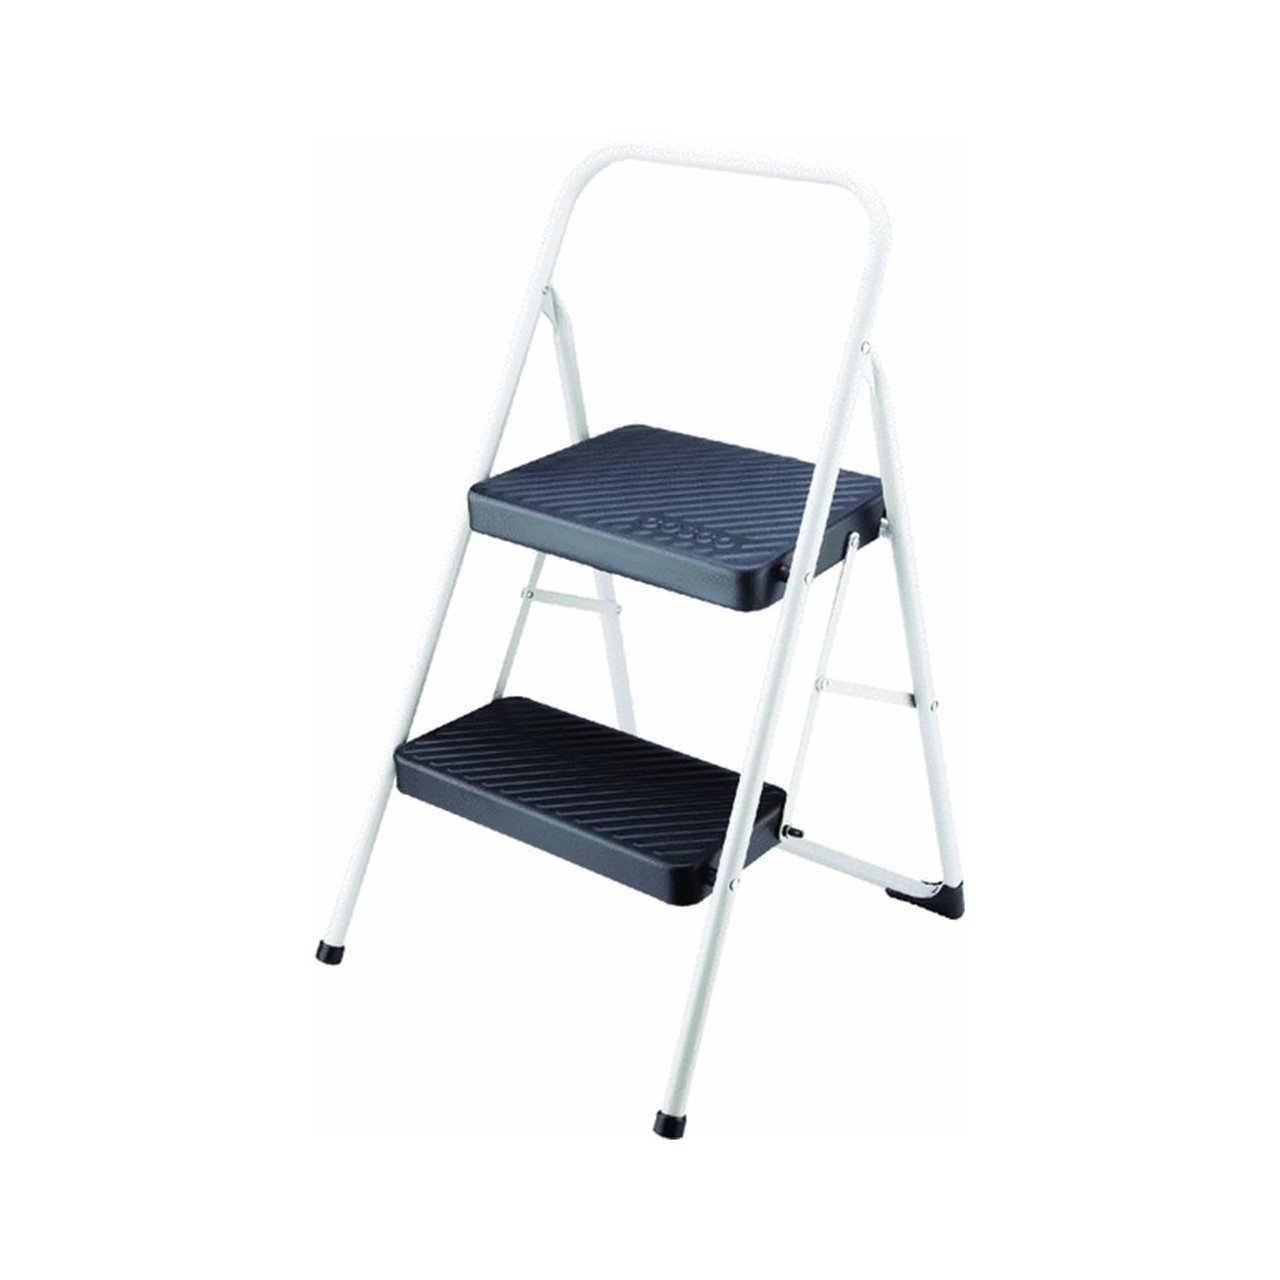 Cosco 11 135clgg1 Folding Step Stool 2 Step Cool Gray